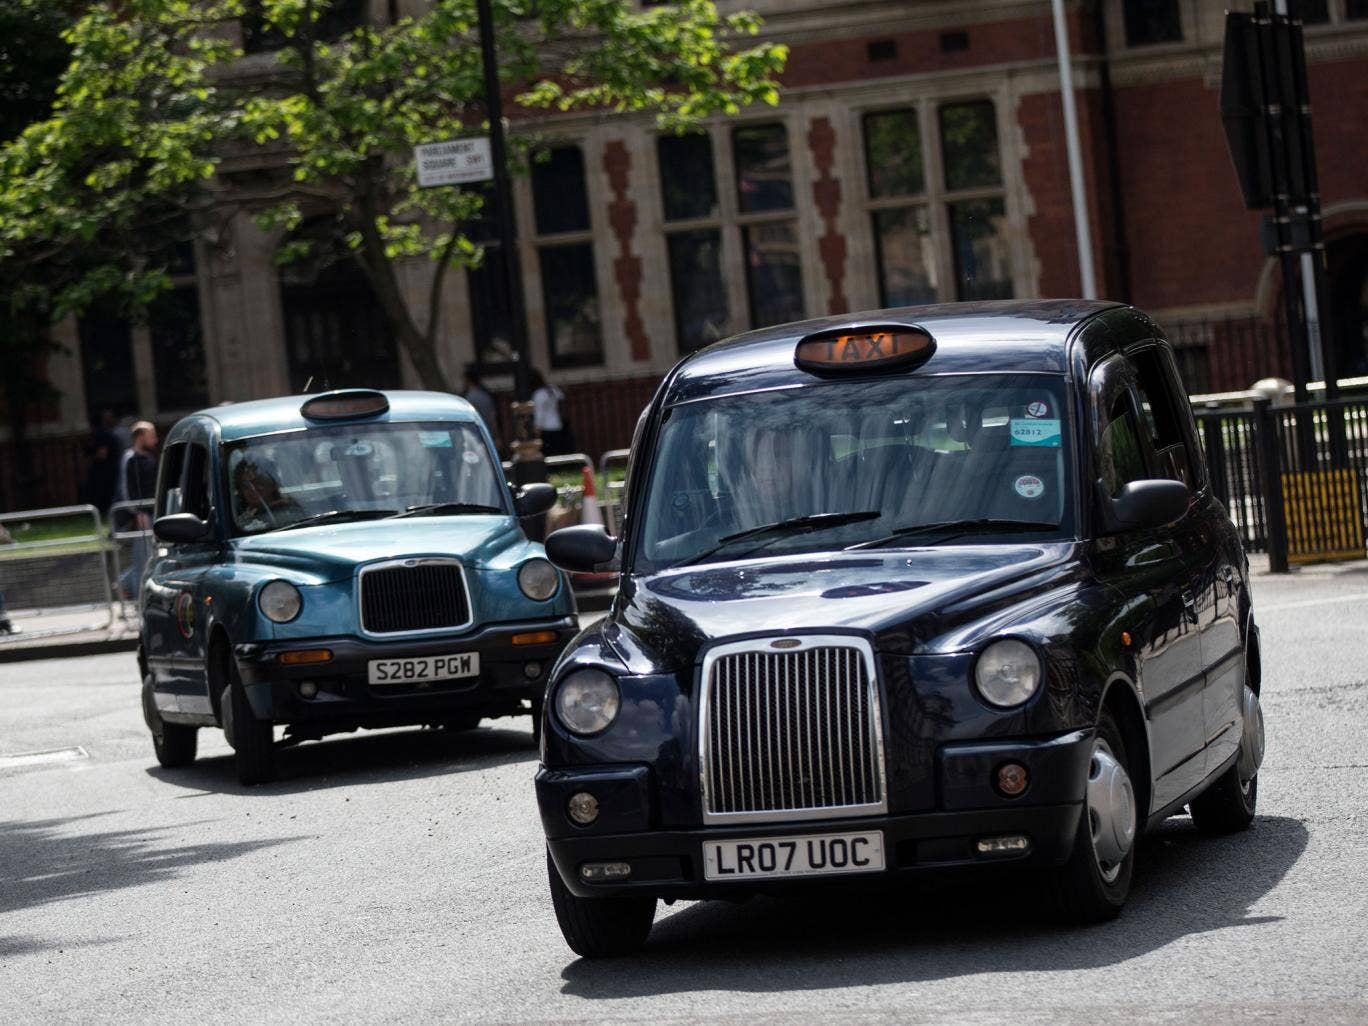 What Cars Qualify For Uber >> London's black cabs take on Uber with offpeak fares | Business | News | The Independent